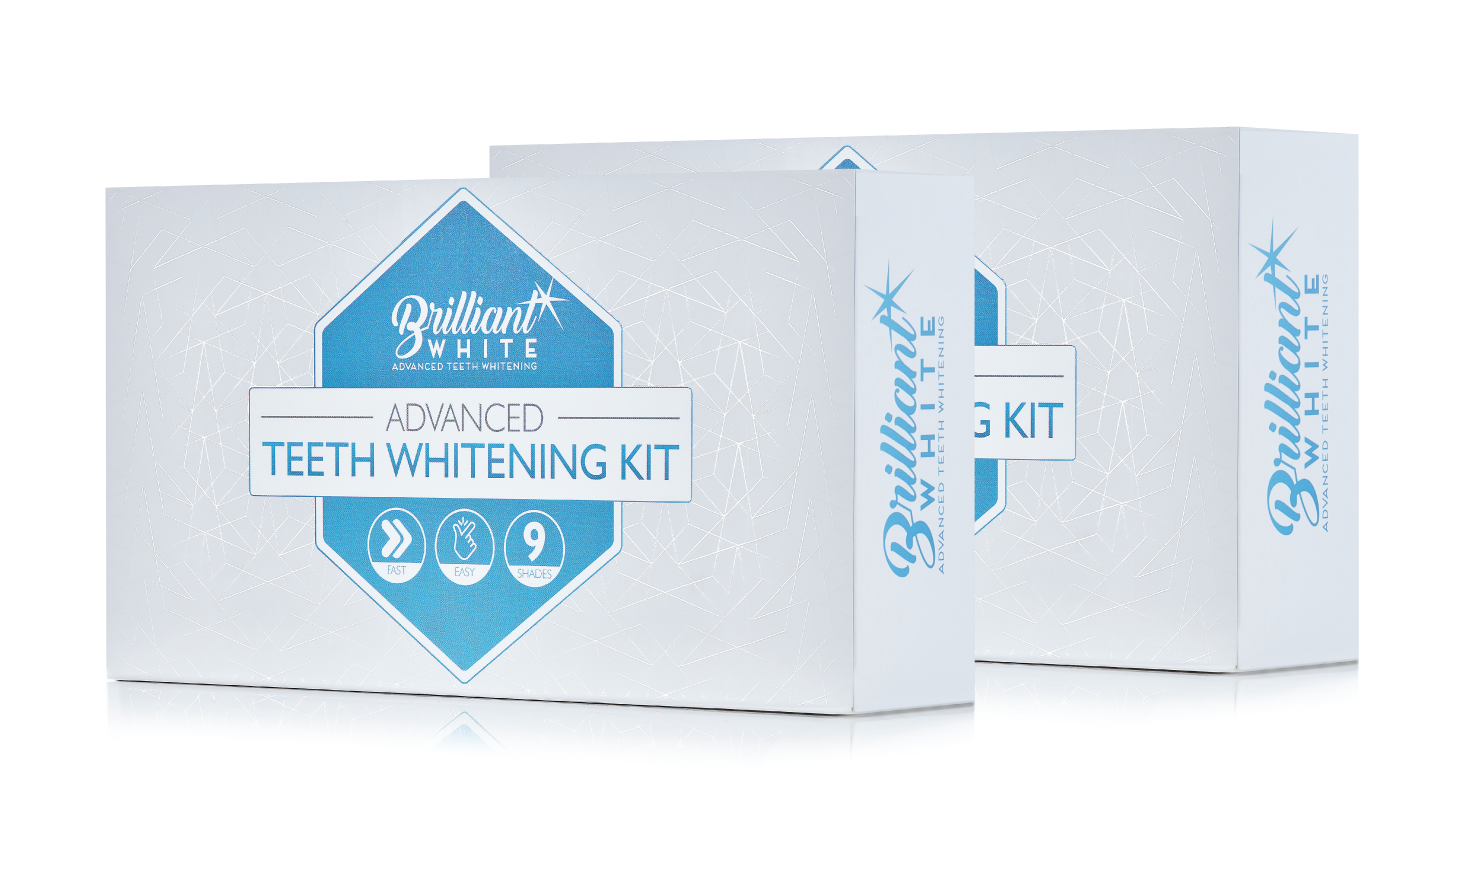 Brilliant White Best Friends Pack - 2 Kits (Ships 4th Week of July)